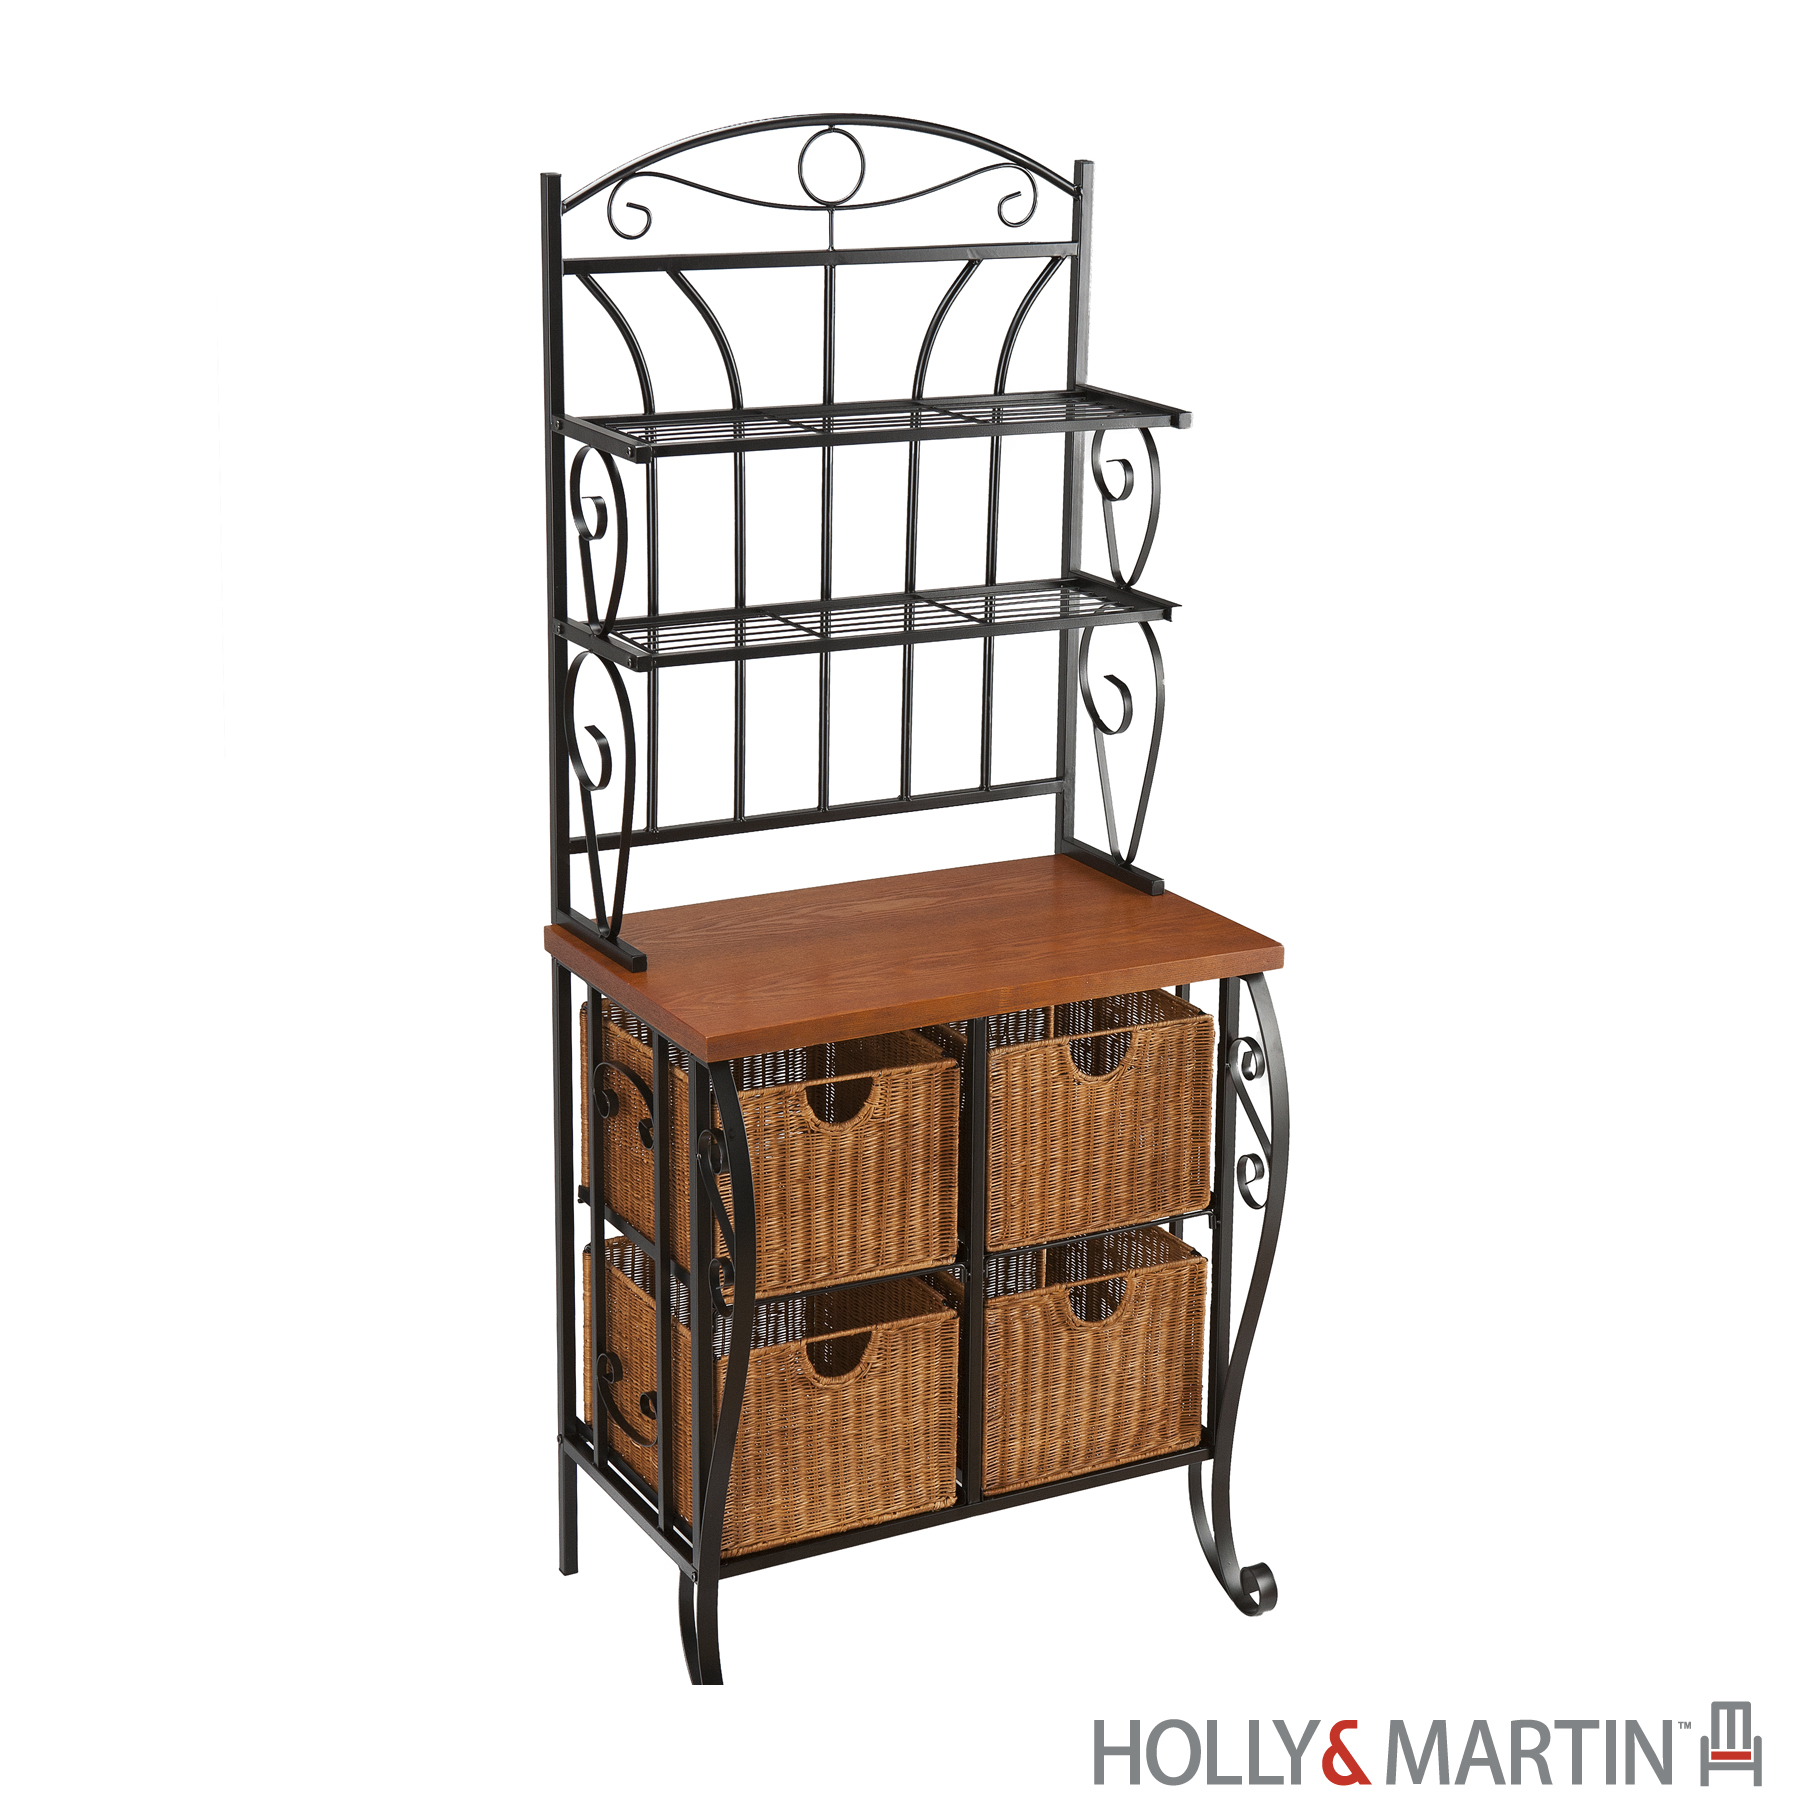 Holly & Martin's Lillian Iron Baker's Rack with Rattan Basket Drawers - 20